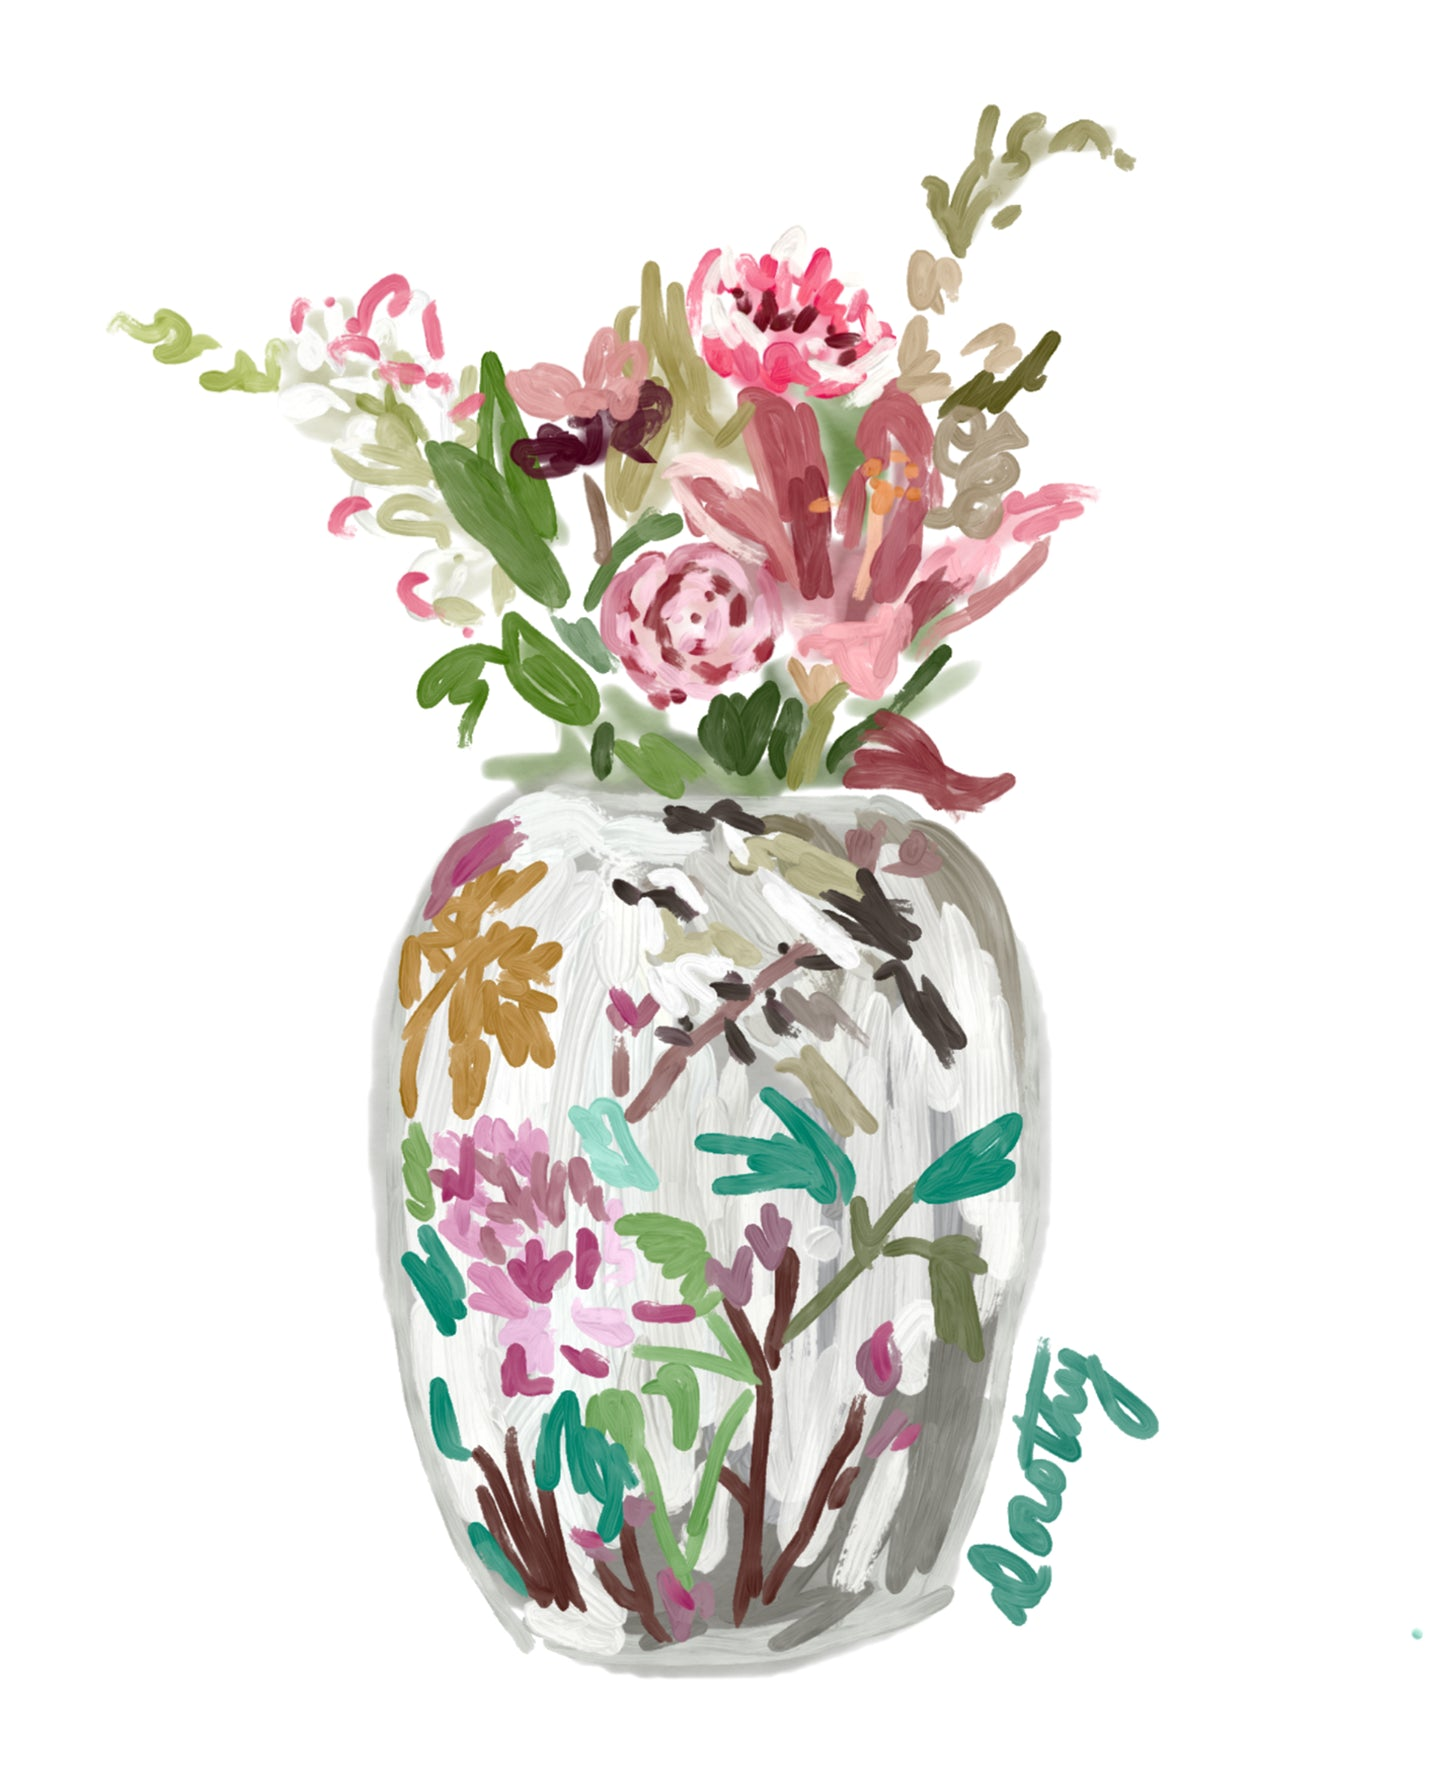 Chinoiserie Florals 1 - Dorothy Art